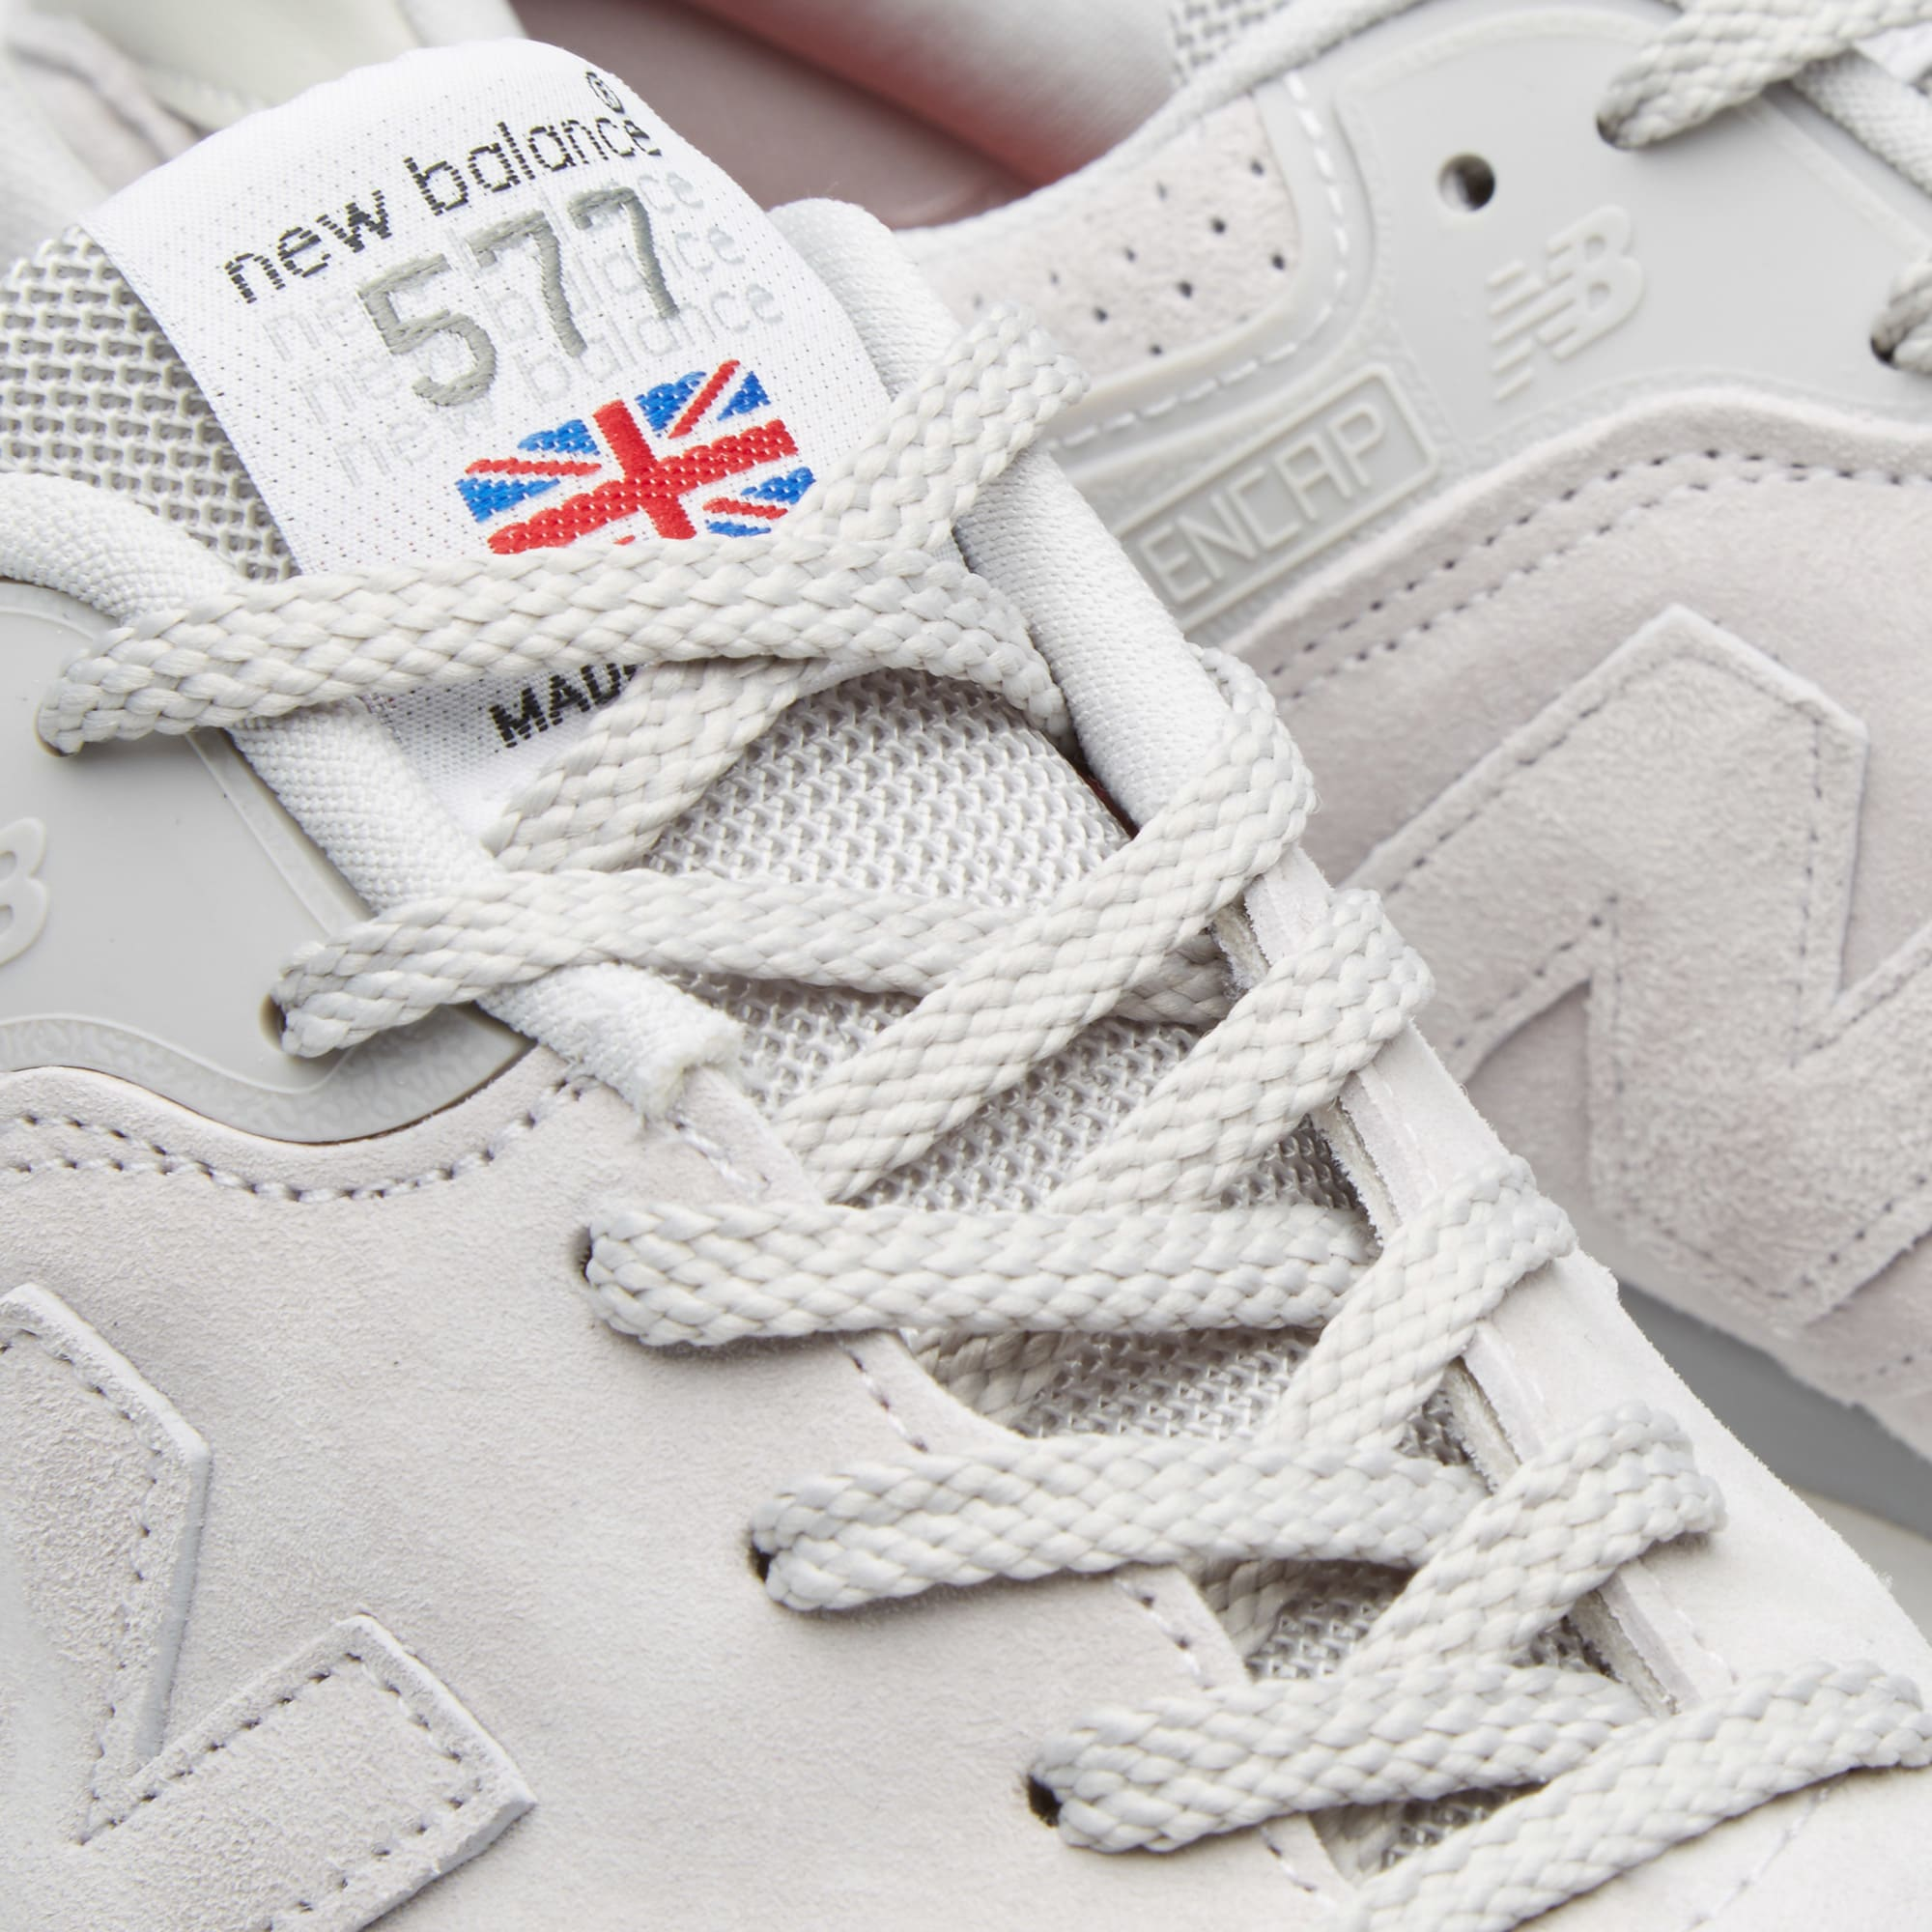 New Balance M577FW - Made in England 'Flying the Flag'